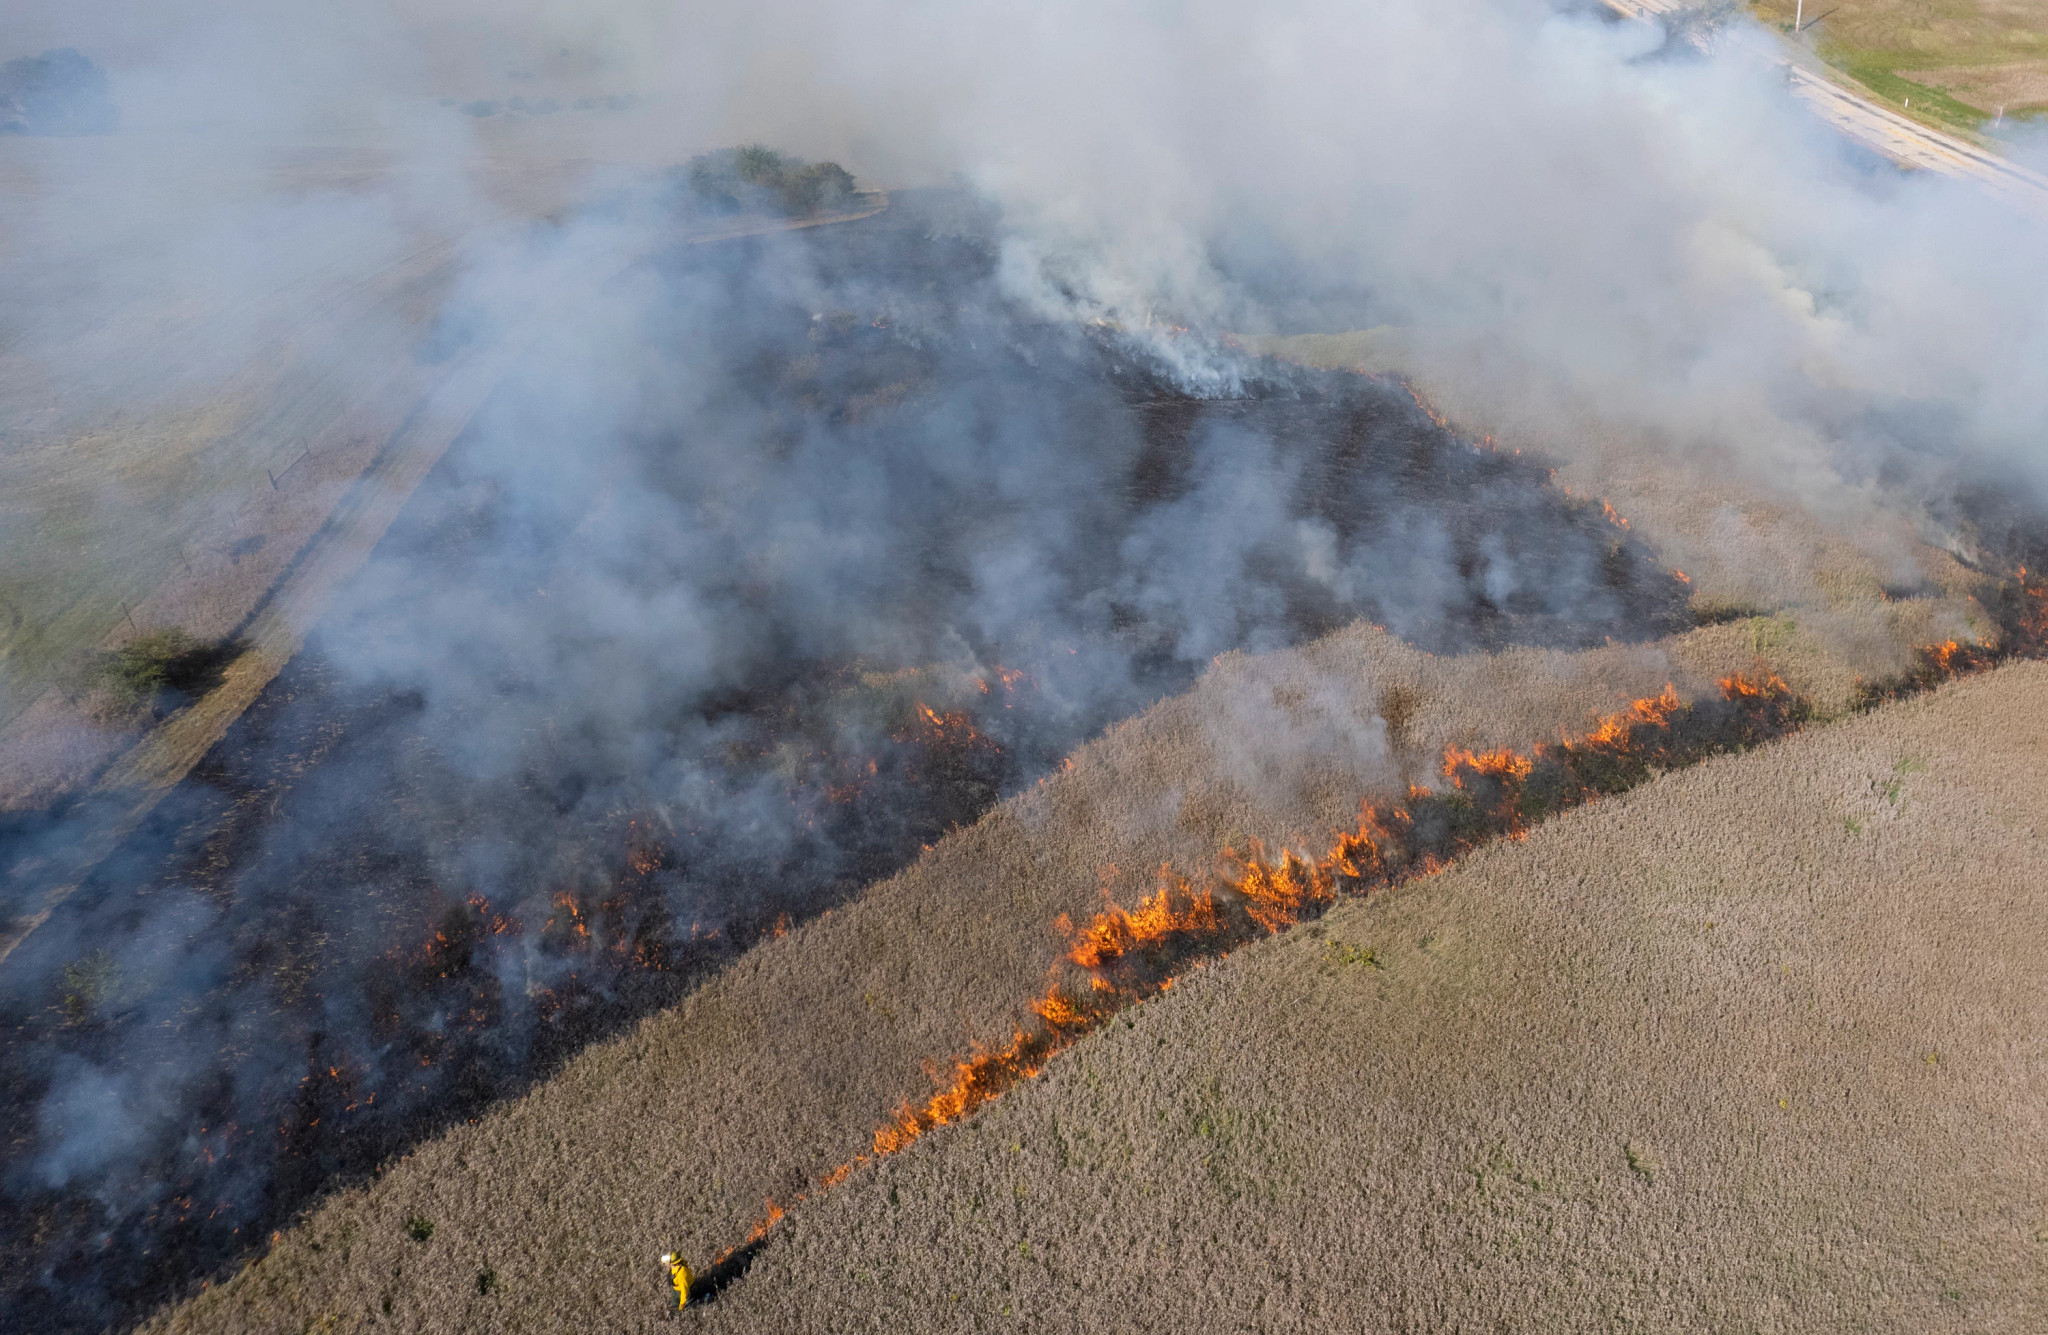 A DNR burn crew member walks along open conservation area conducting a controlled burn of sections